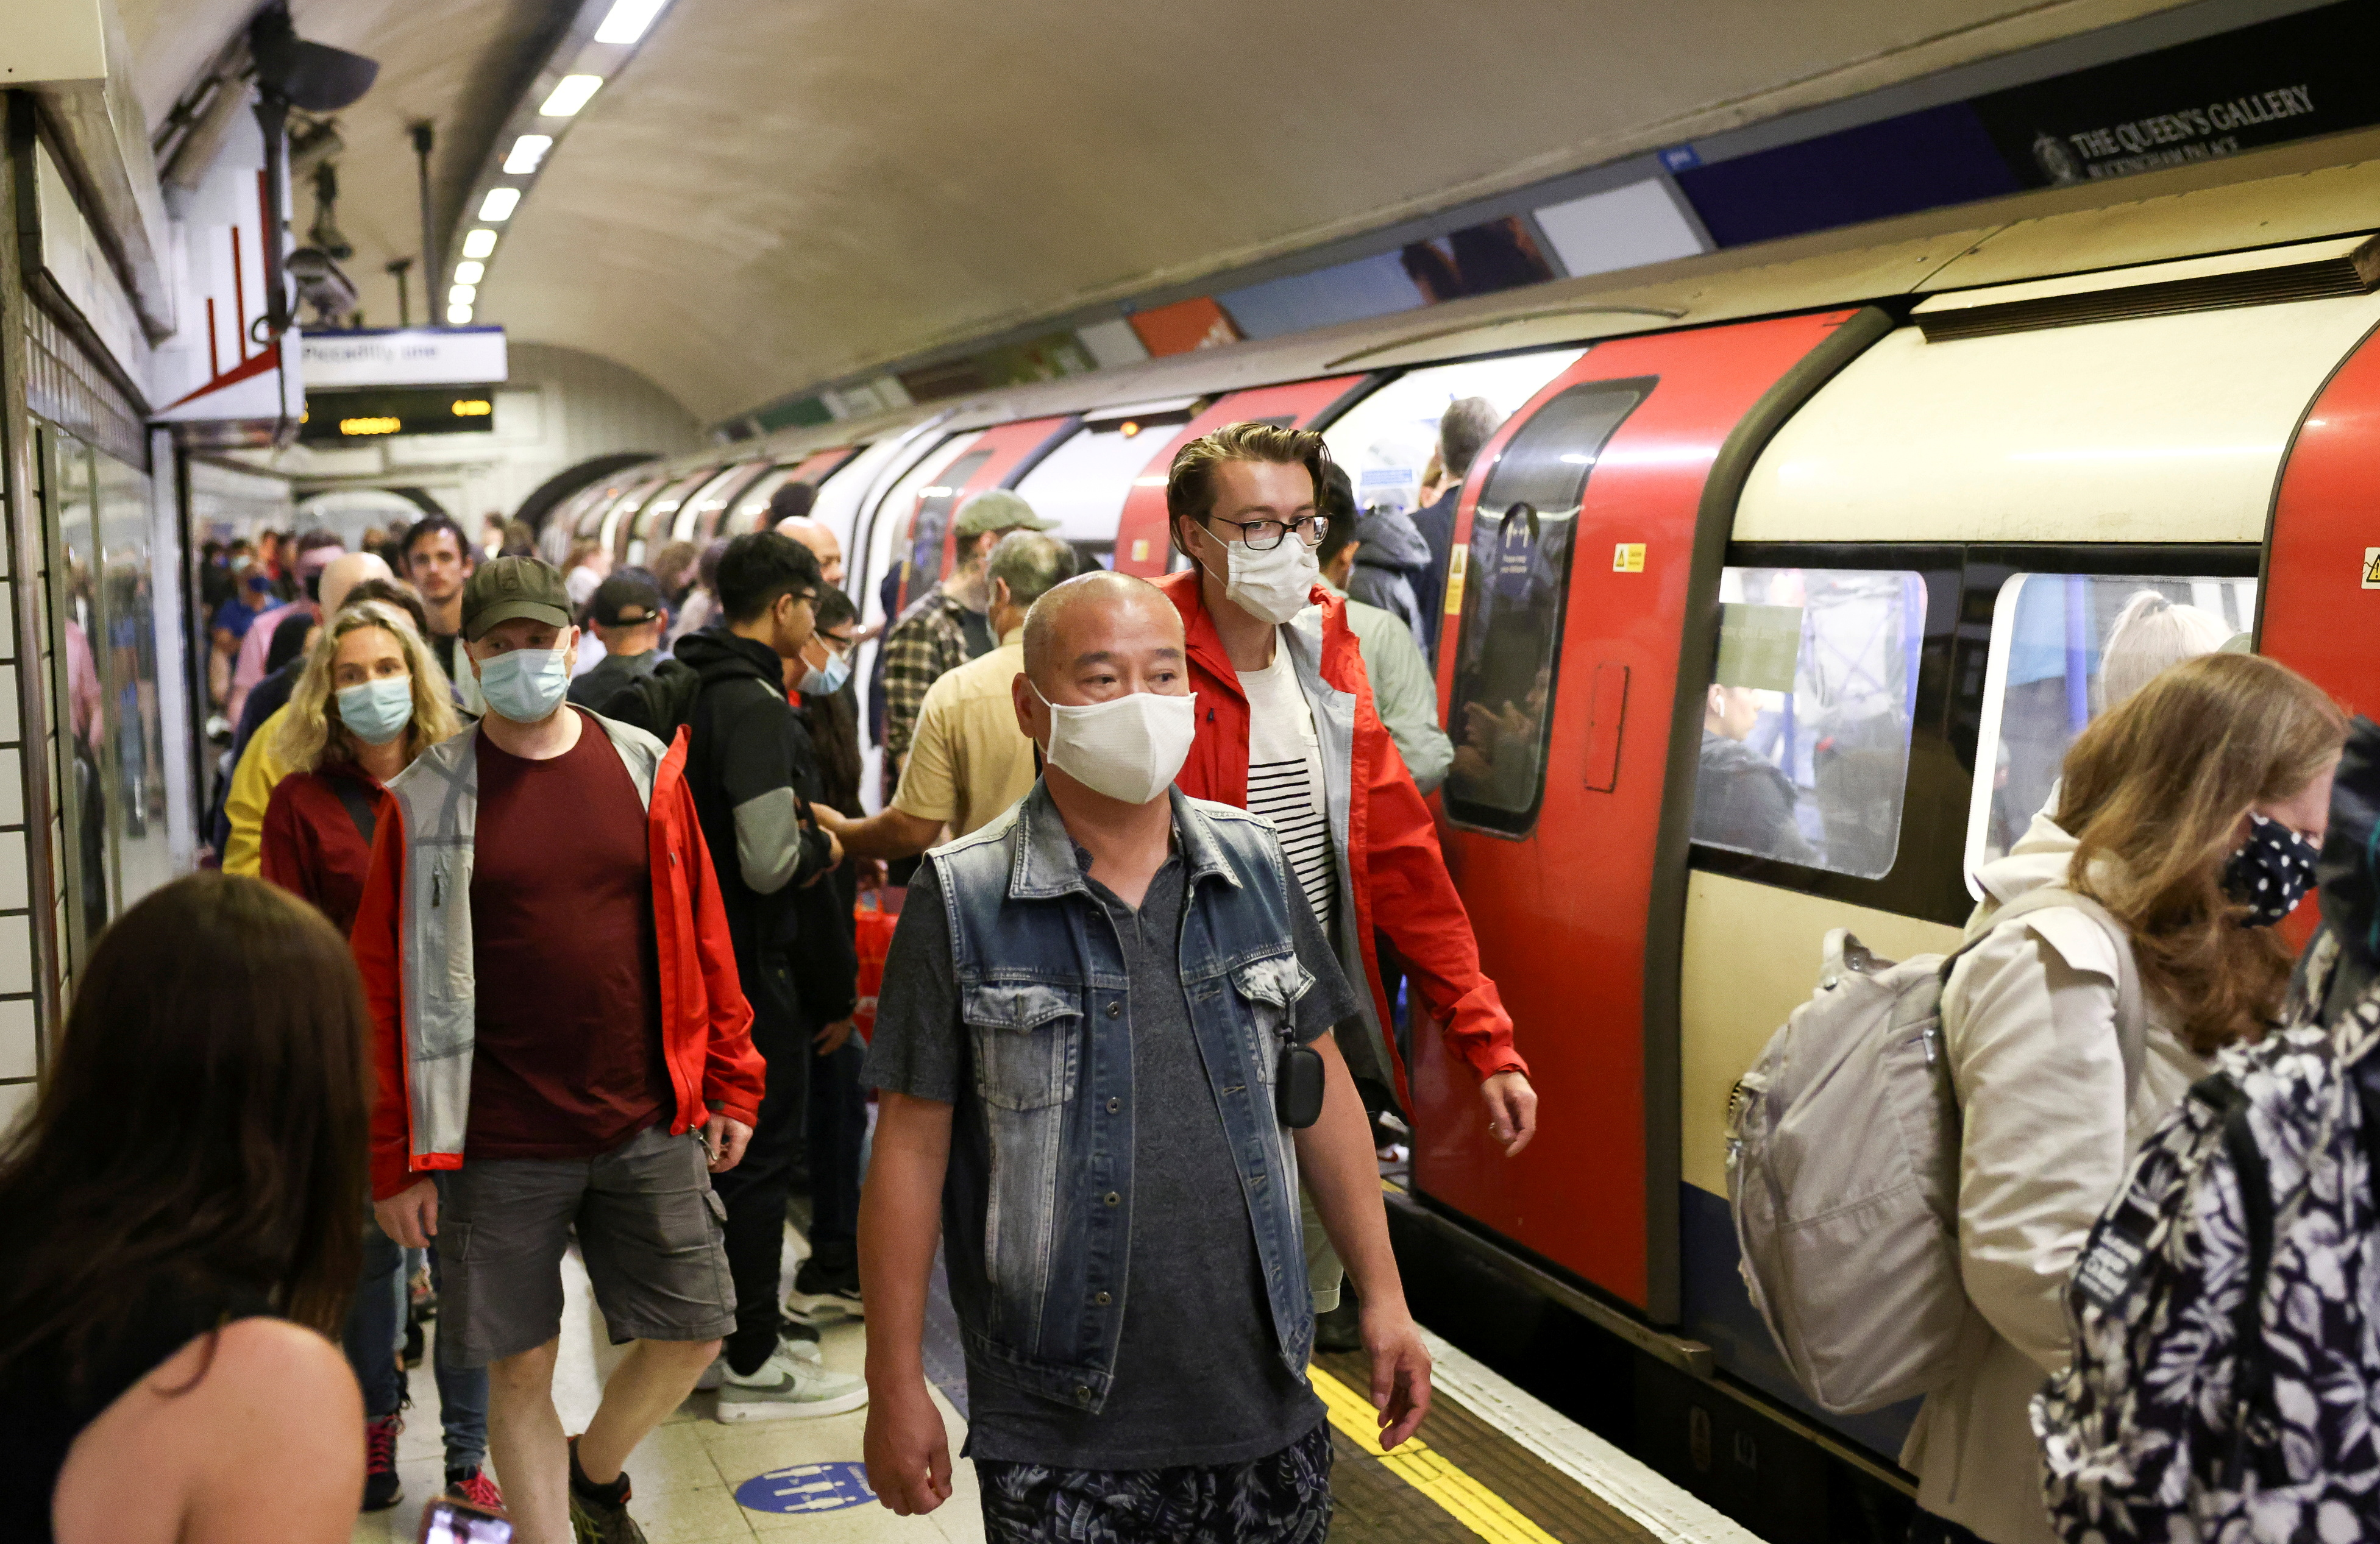 People wearing protective face masks walk along a platform on the London Underground, amid the coronavirus disease (COVID-19) outbreak, in London, Britain, July 25, 2021. REUTERS/Henry Nicholls/File Photo